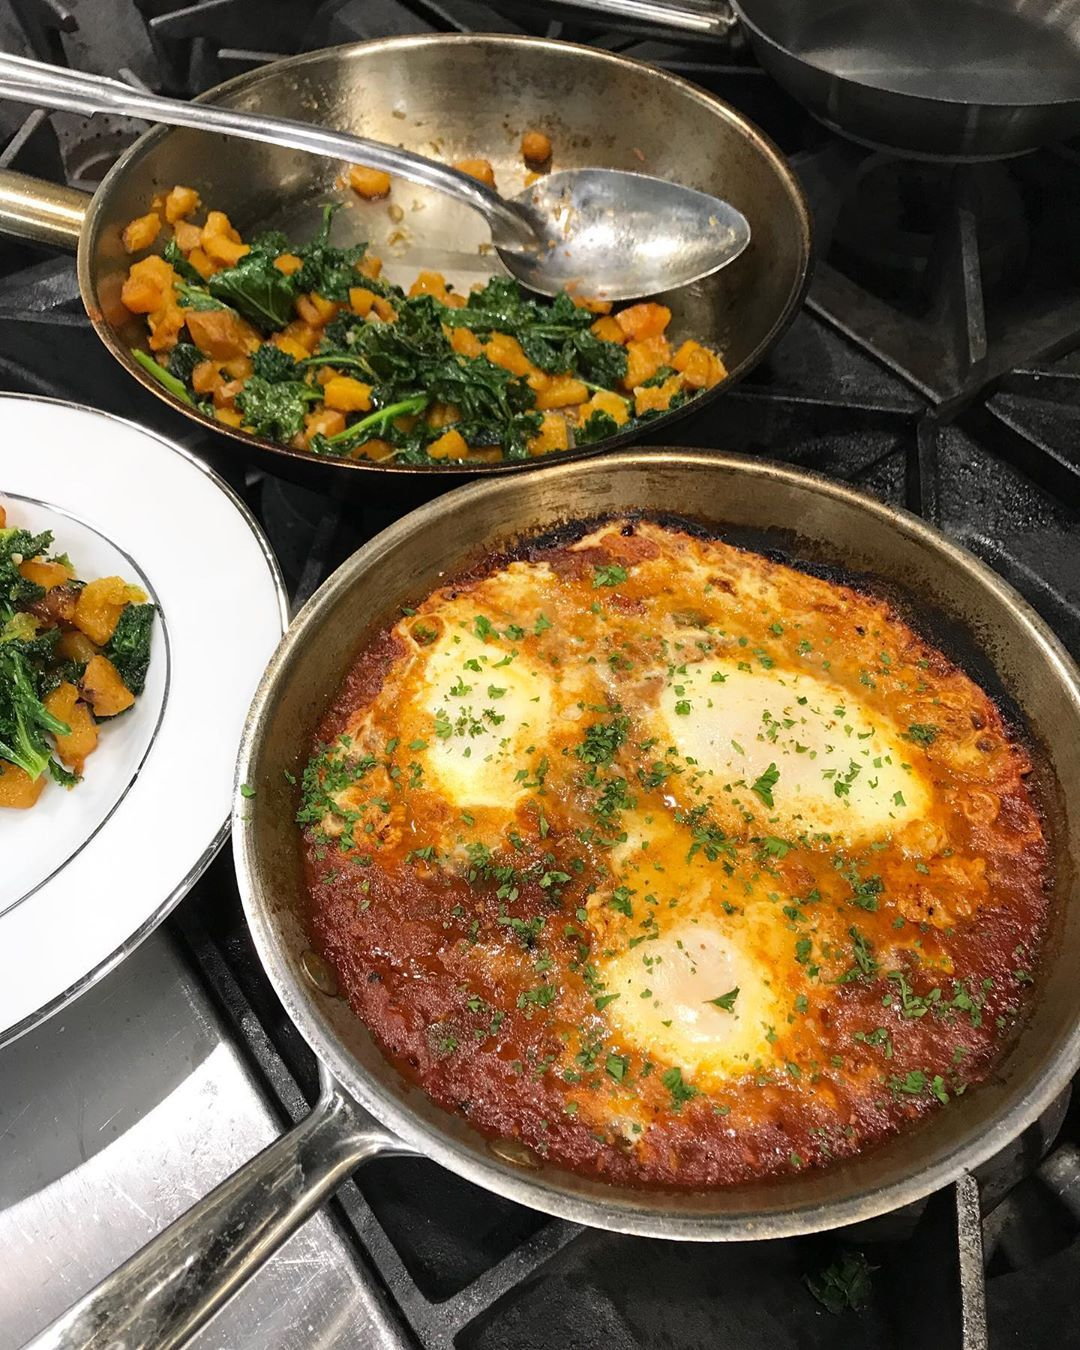 Made Shakshuka for lunch!  Eggs poached in spicy tomato sauce. Perfect for brunch! . .  Made Shakshuka for lunch!  Eggs poached in spicy tomato sauce. Perfect for brunch! . .